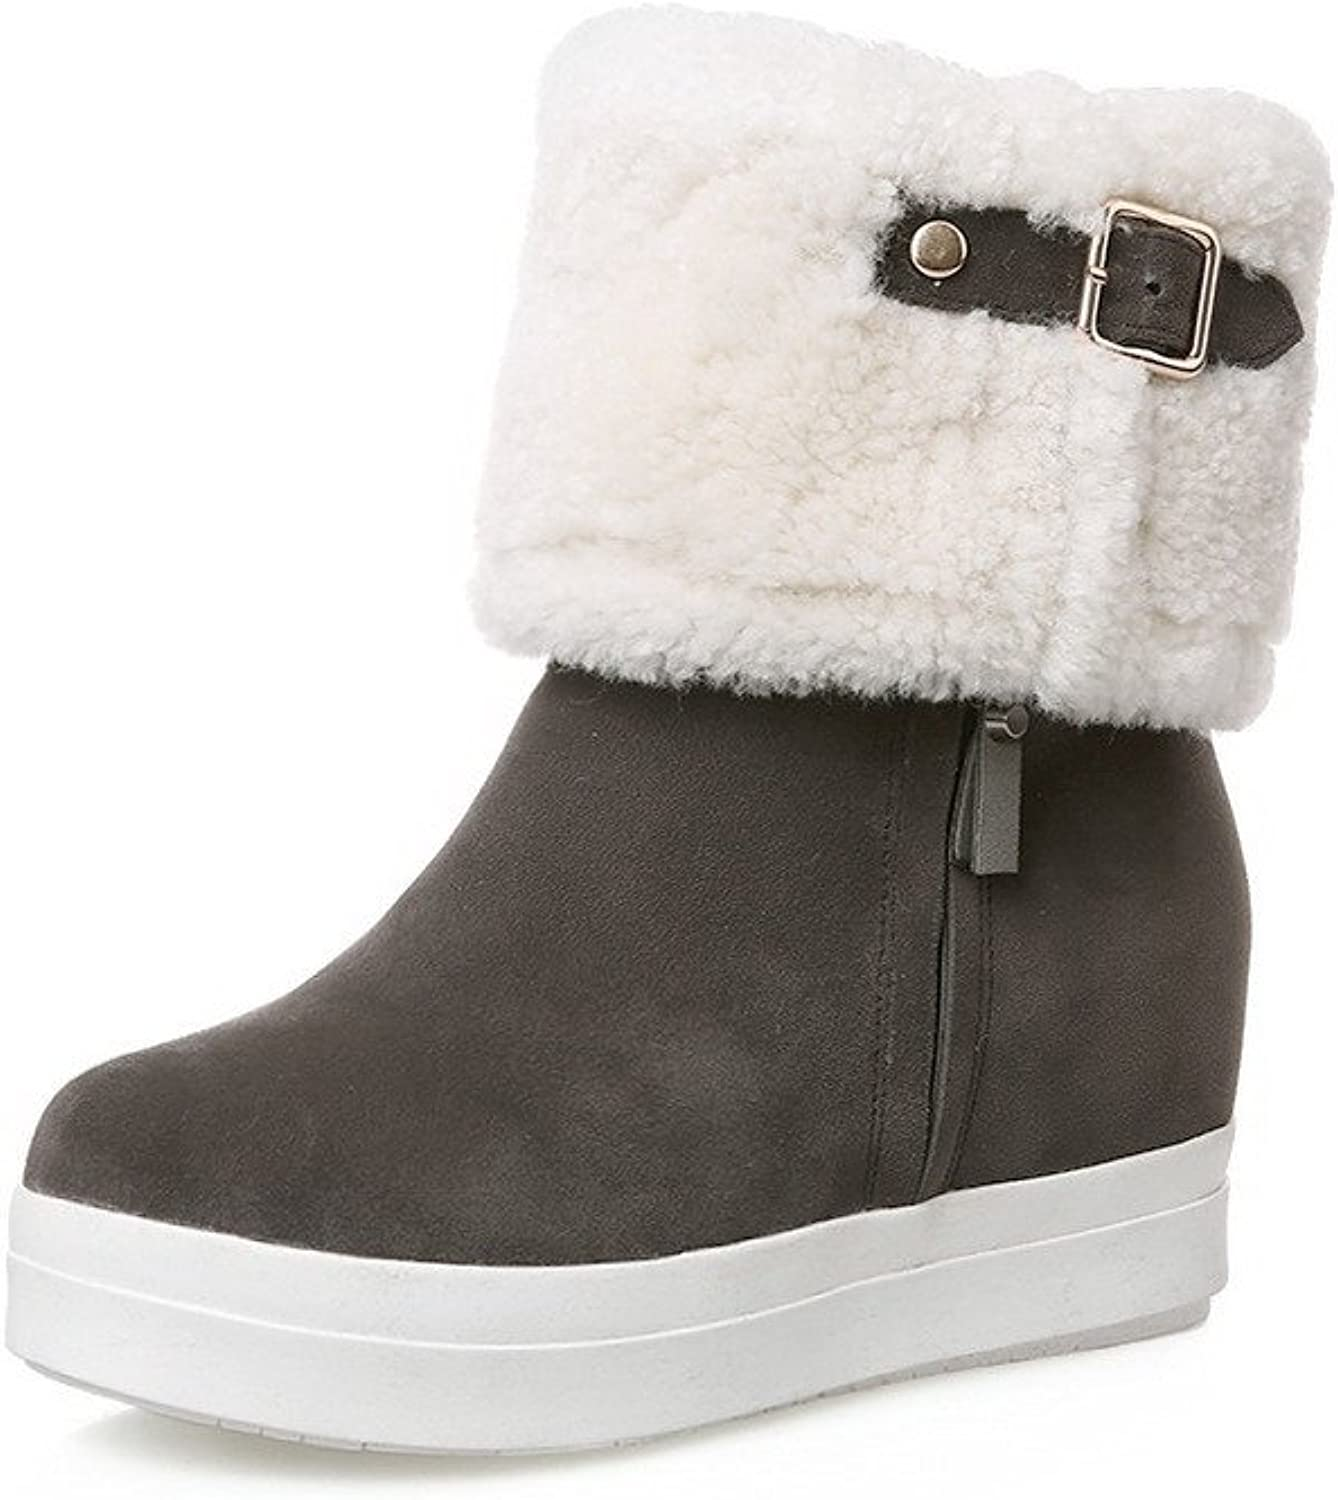 WeenFashion Women's Assorted color Round Closed Toe Blend Materials Flock Low-Top Boots